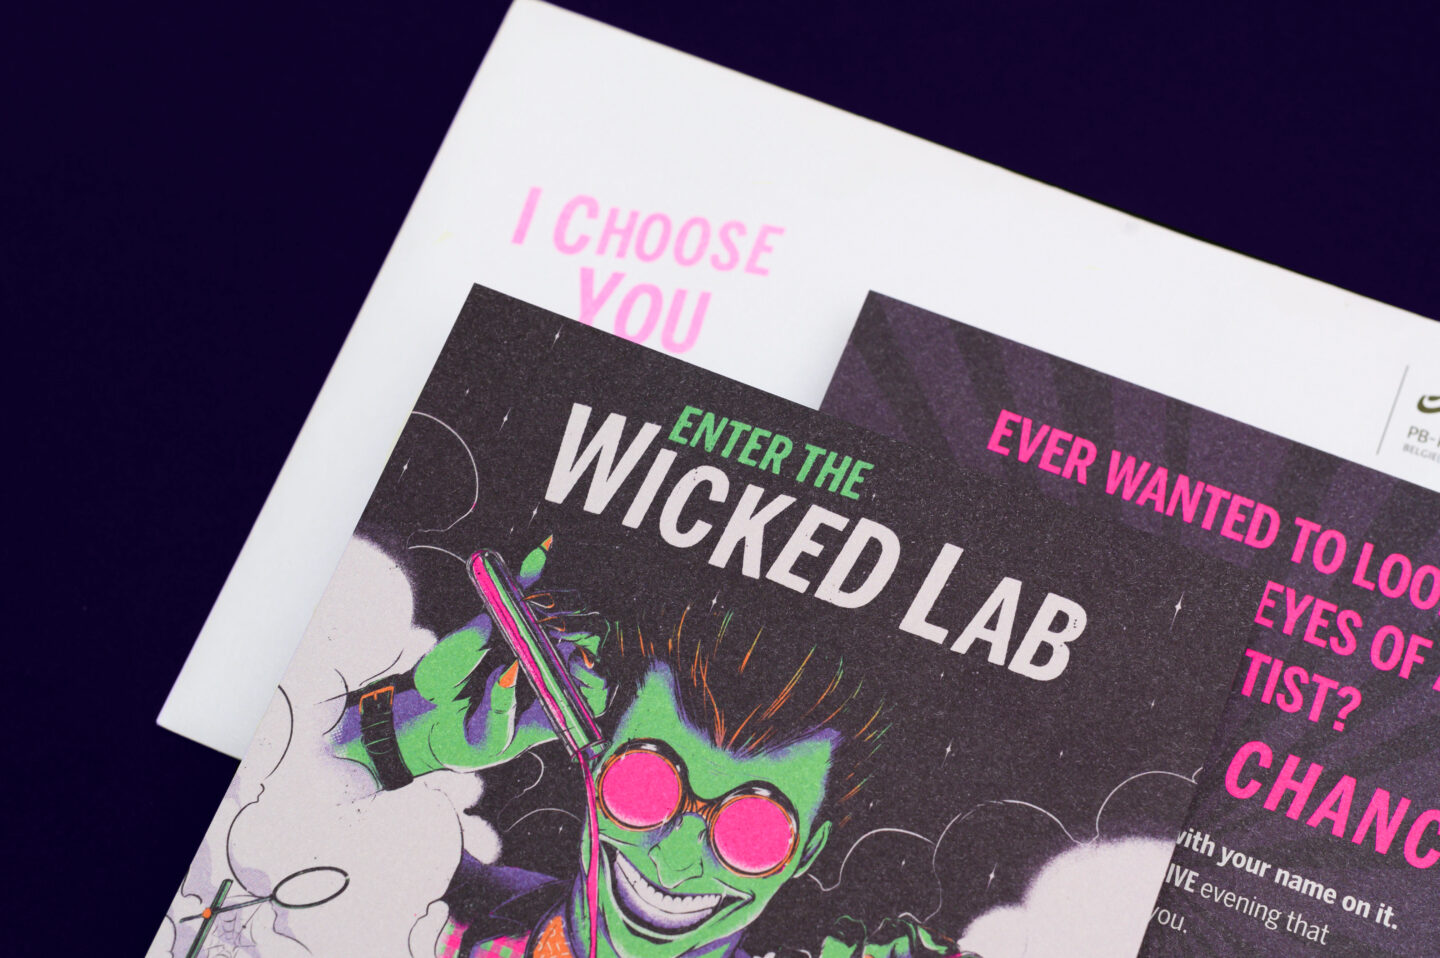 The wicked lab